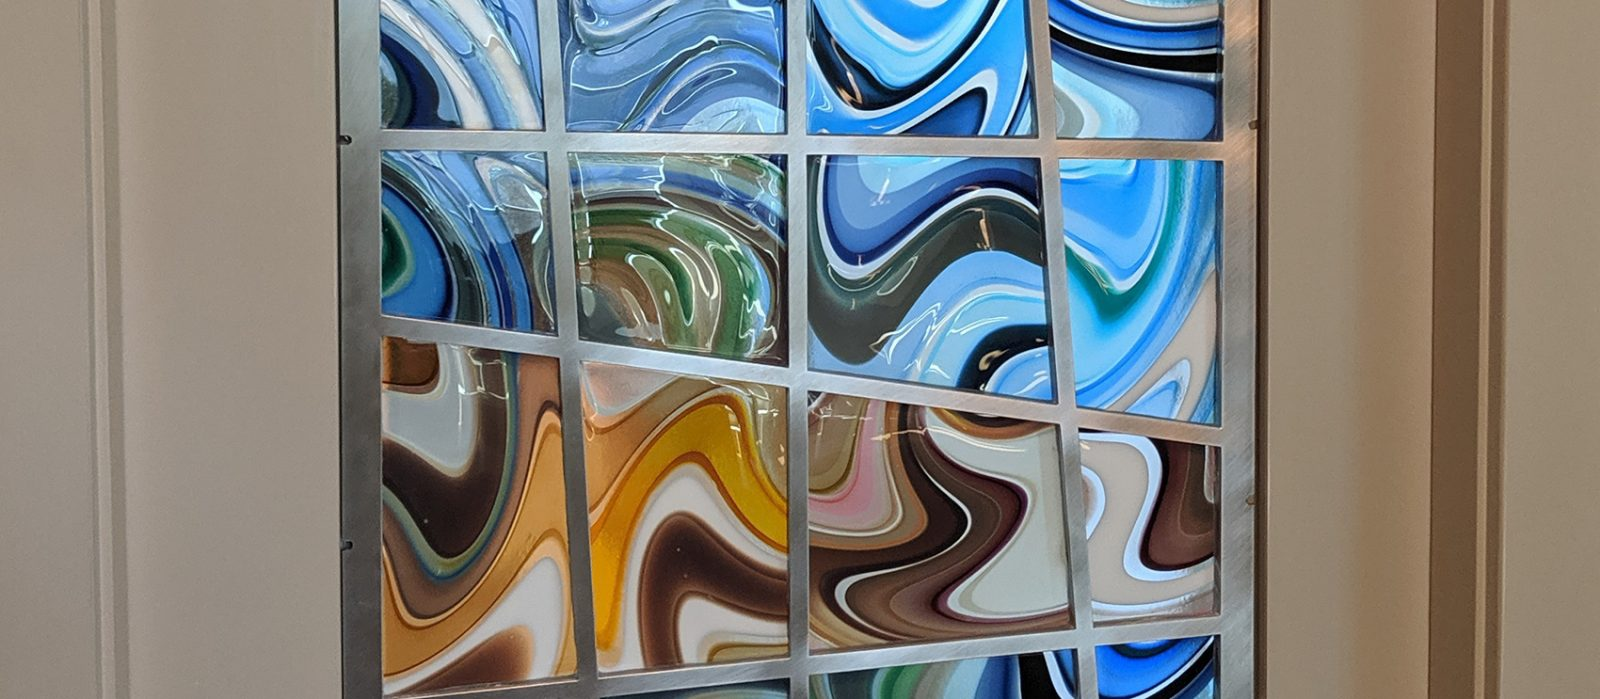 Amazing pocket door, made with striped blown glass panels set in metal